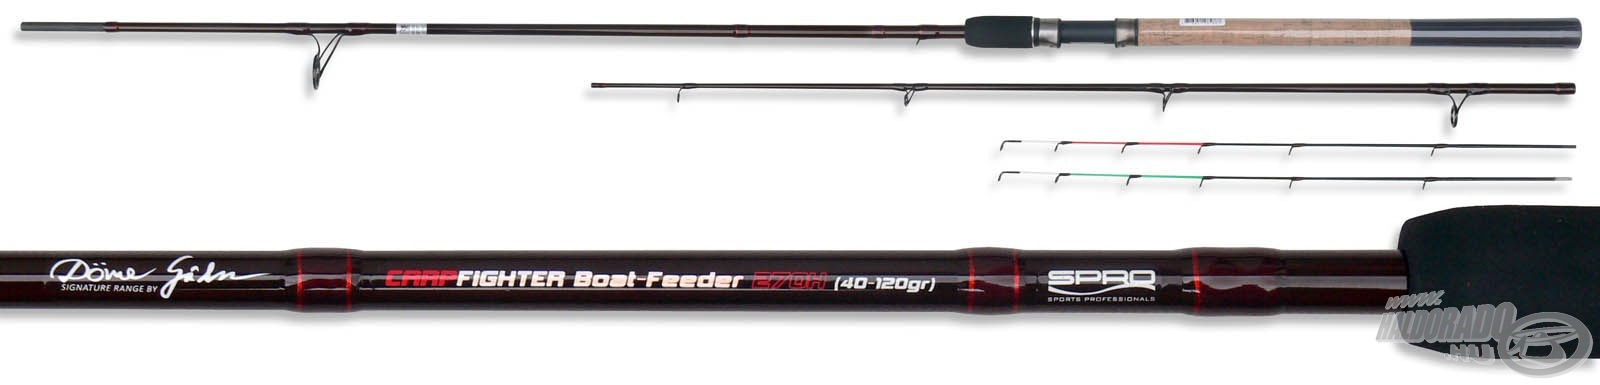 SPRO Team Feeder Carp Fighter Boat - by D�me G�bor 12990Ft-t�l